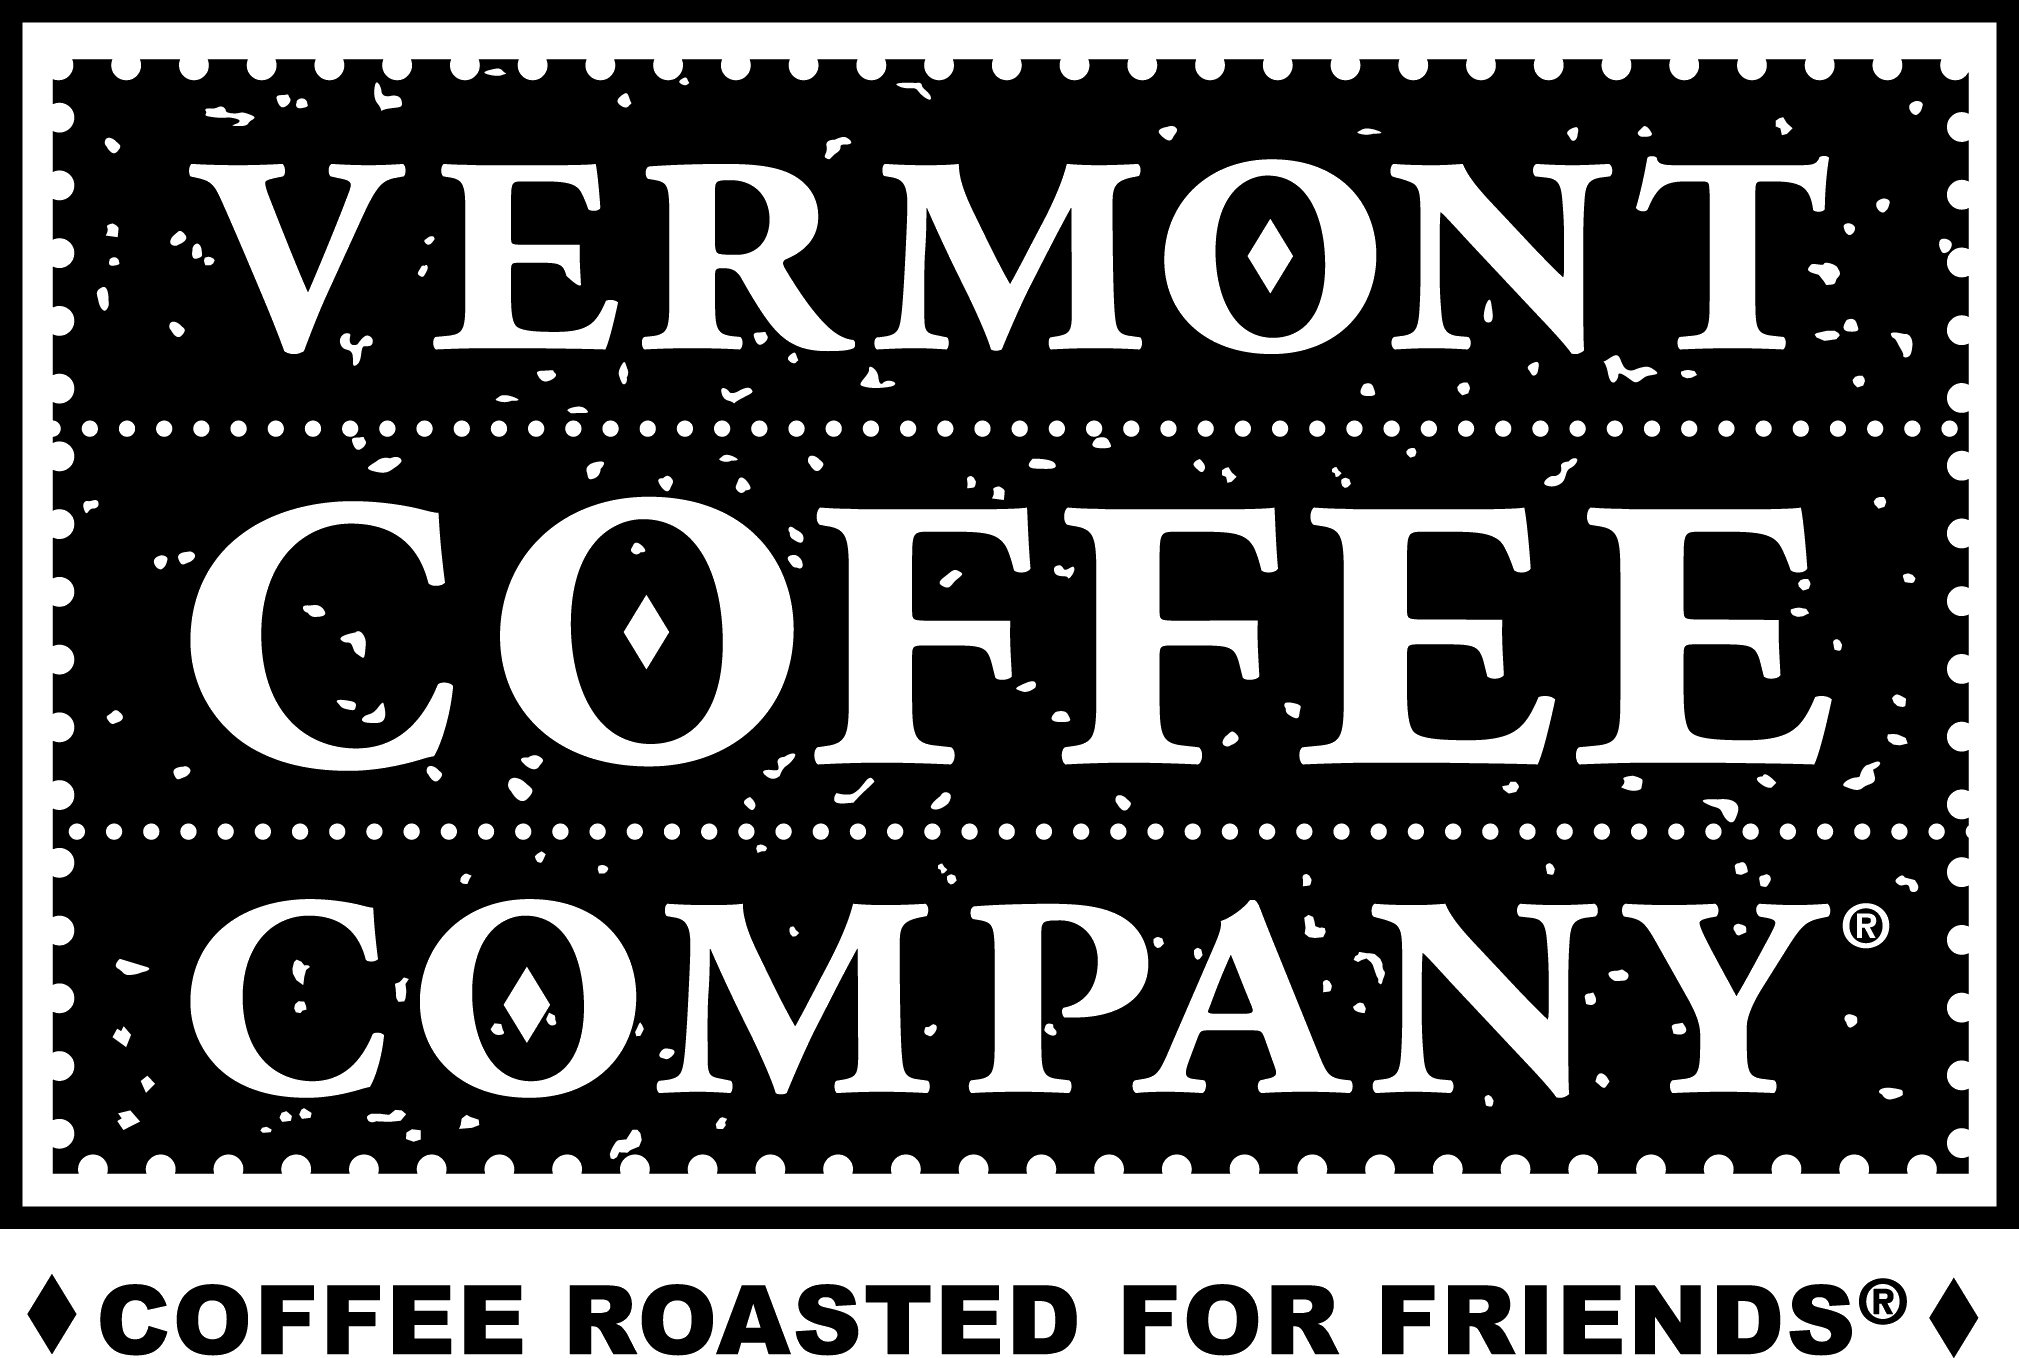 Vermont Coffee Company logo and tagline